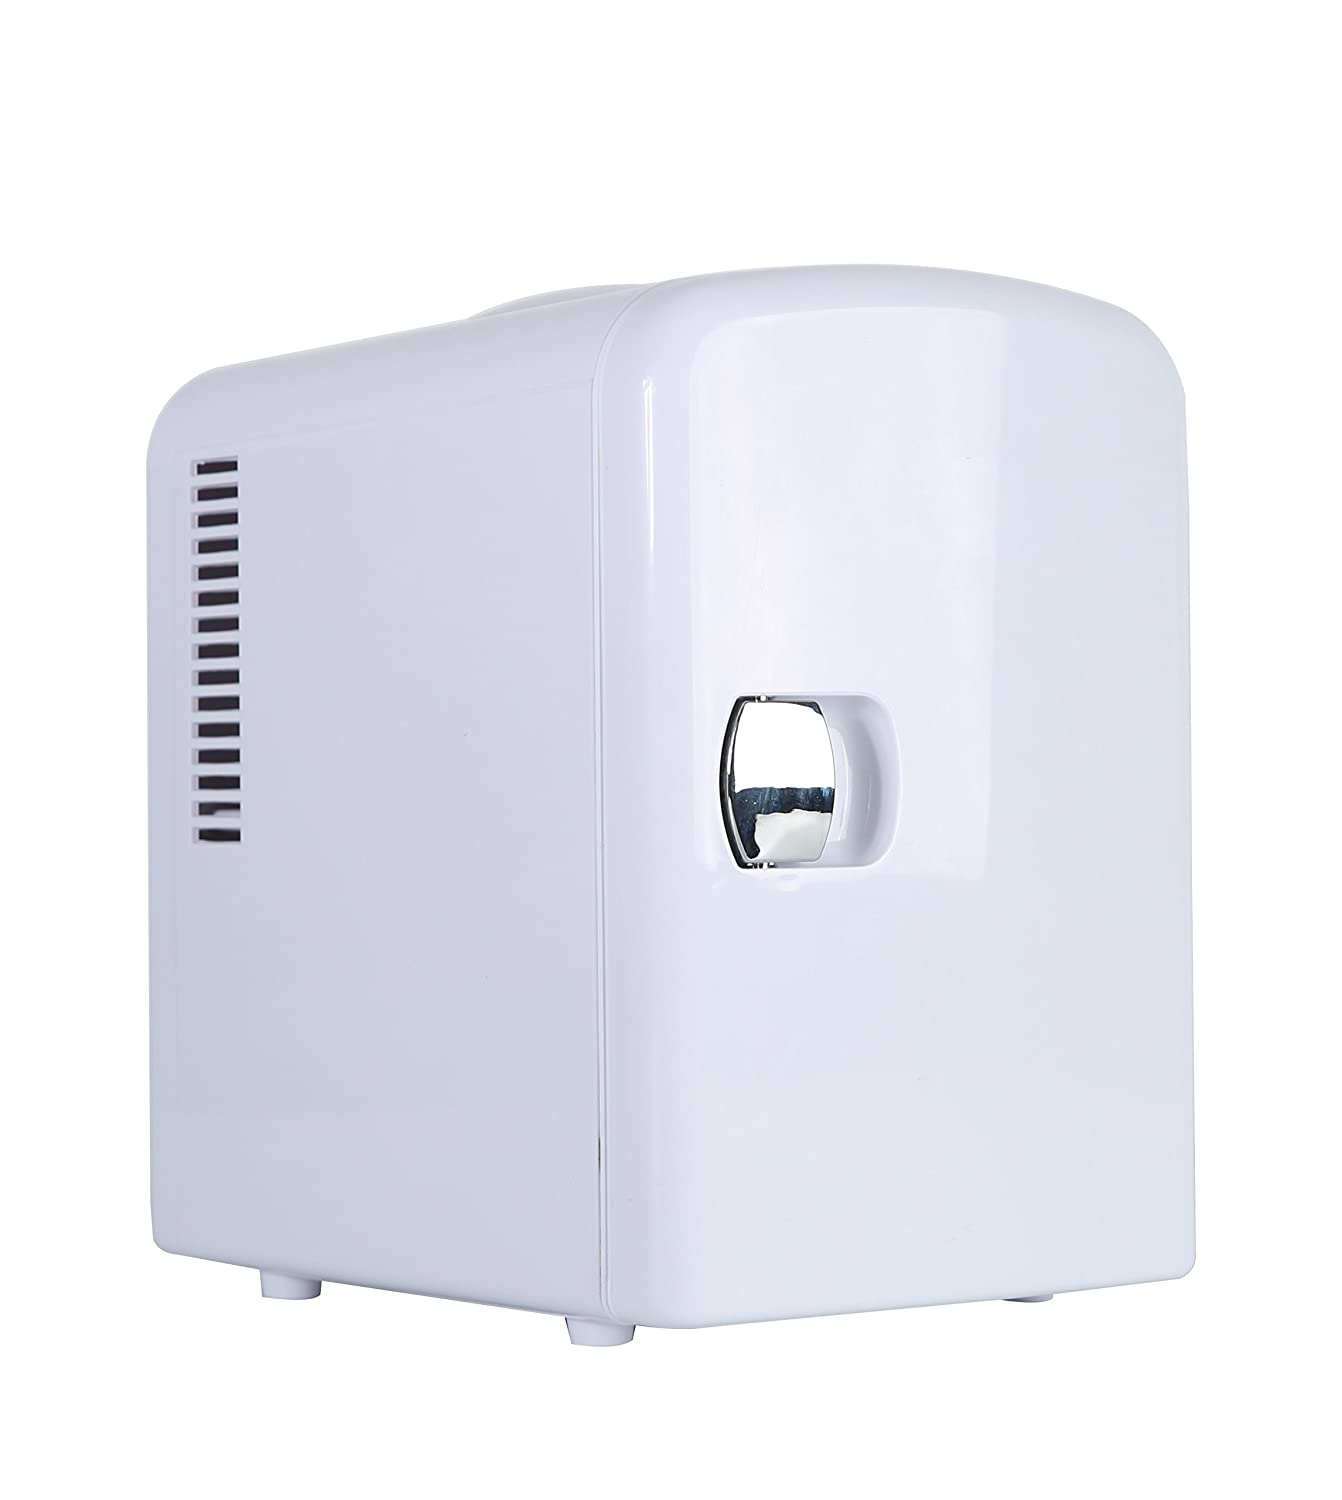 Portable 6 Can Mini Fridge Cooler - Home,Office, Car or Boat - AC & DC - White - 110/120V Northcool